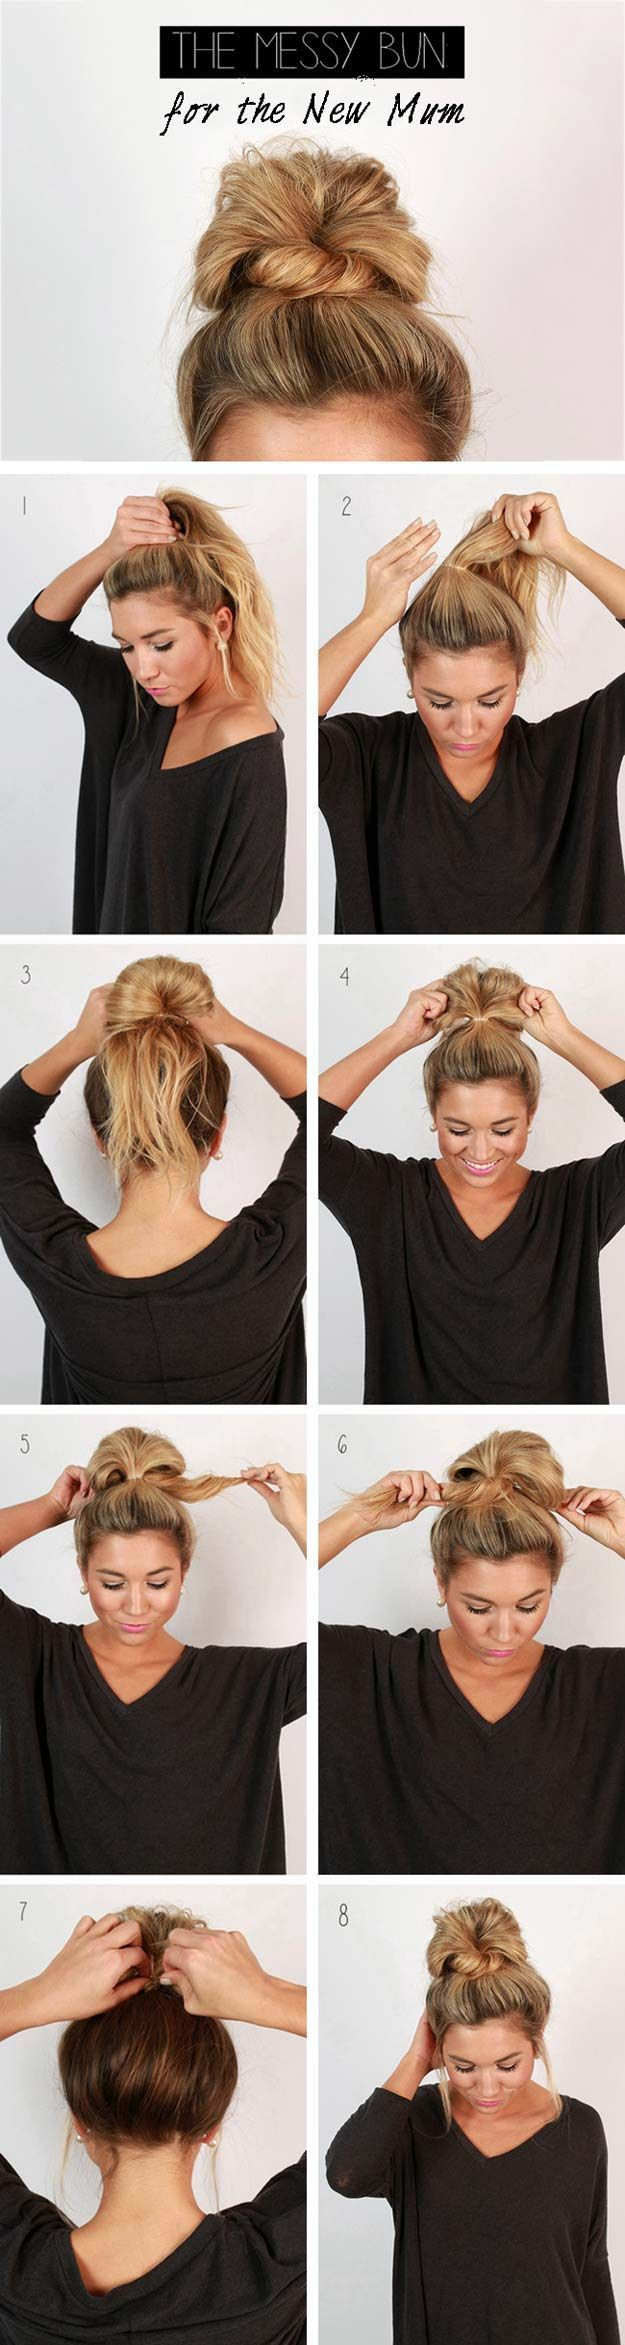 Buns Hairstyles buns hairstyles 13 Best 10 Easy Bun Hairstyles Ideas On Pinterest Bun Hairstyles Hair Buns And Summer Hair Buns